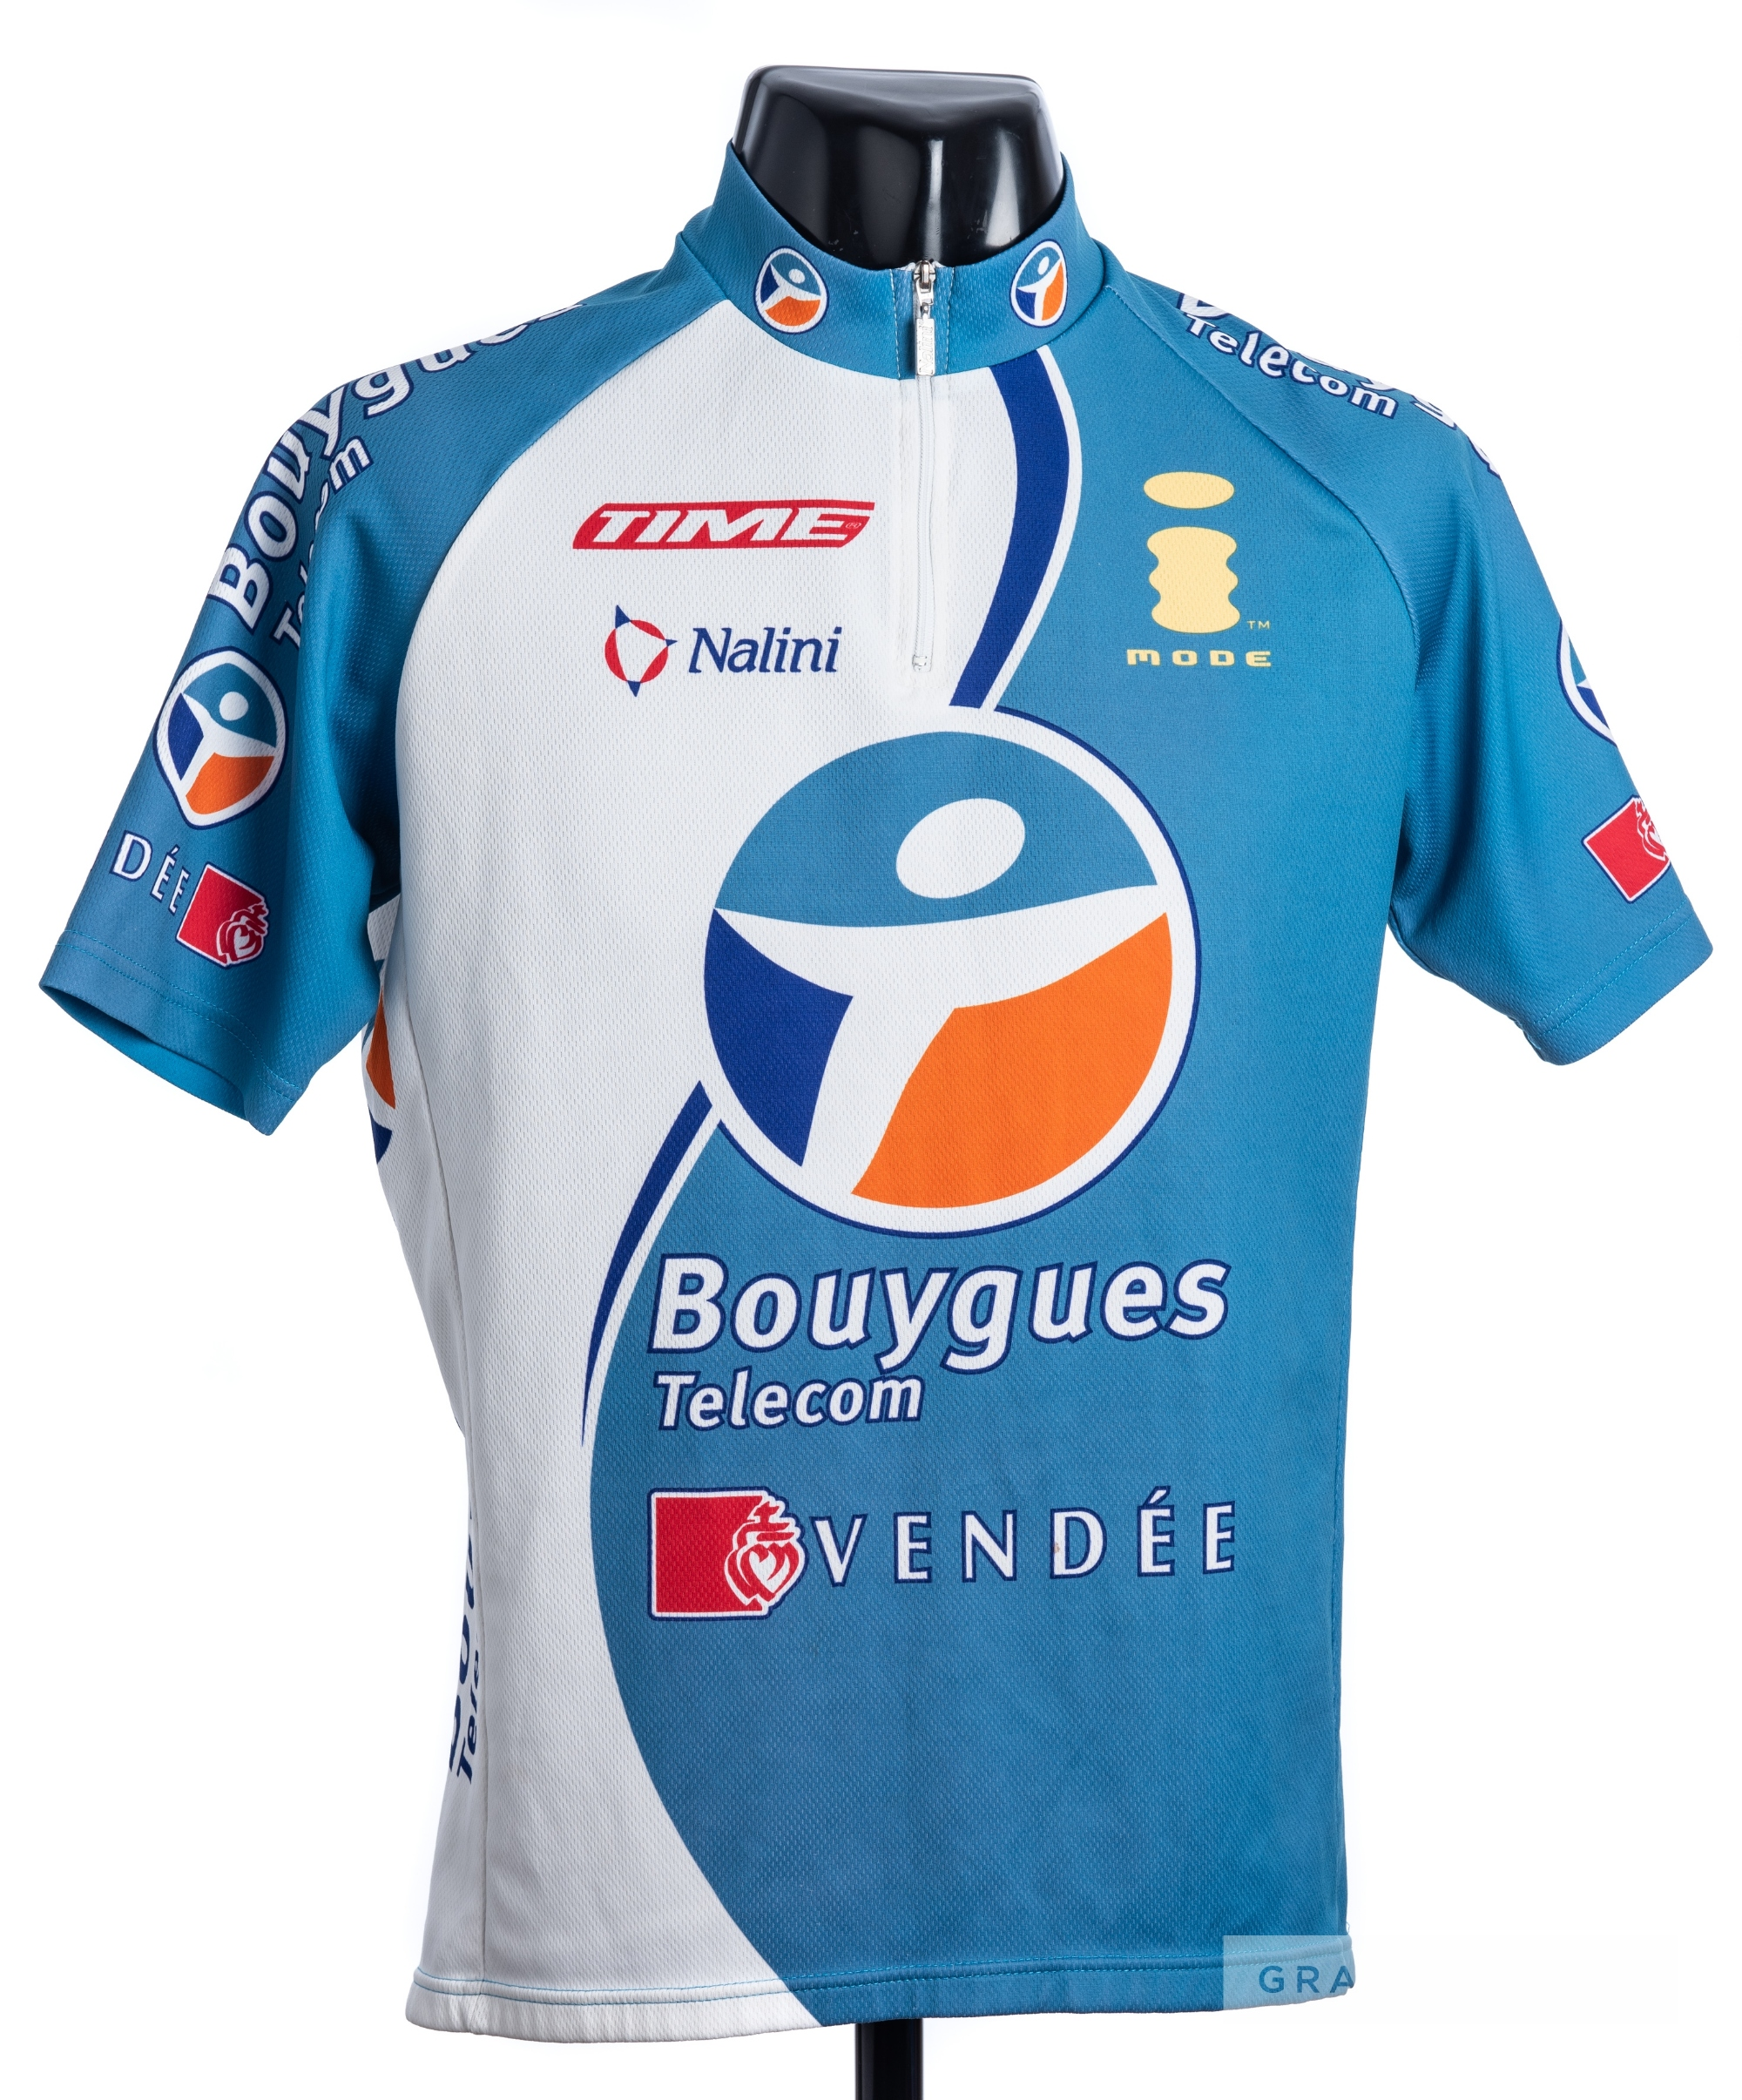 2005 blue, white, navy and orange Bouygues Telecom Vendee French Cycling team race jersey, scarce, - Image 3 of 4